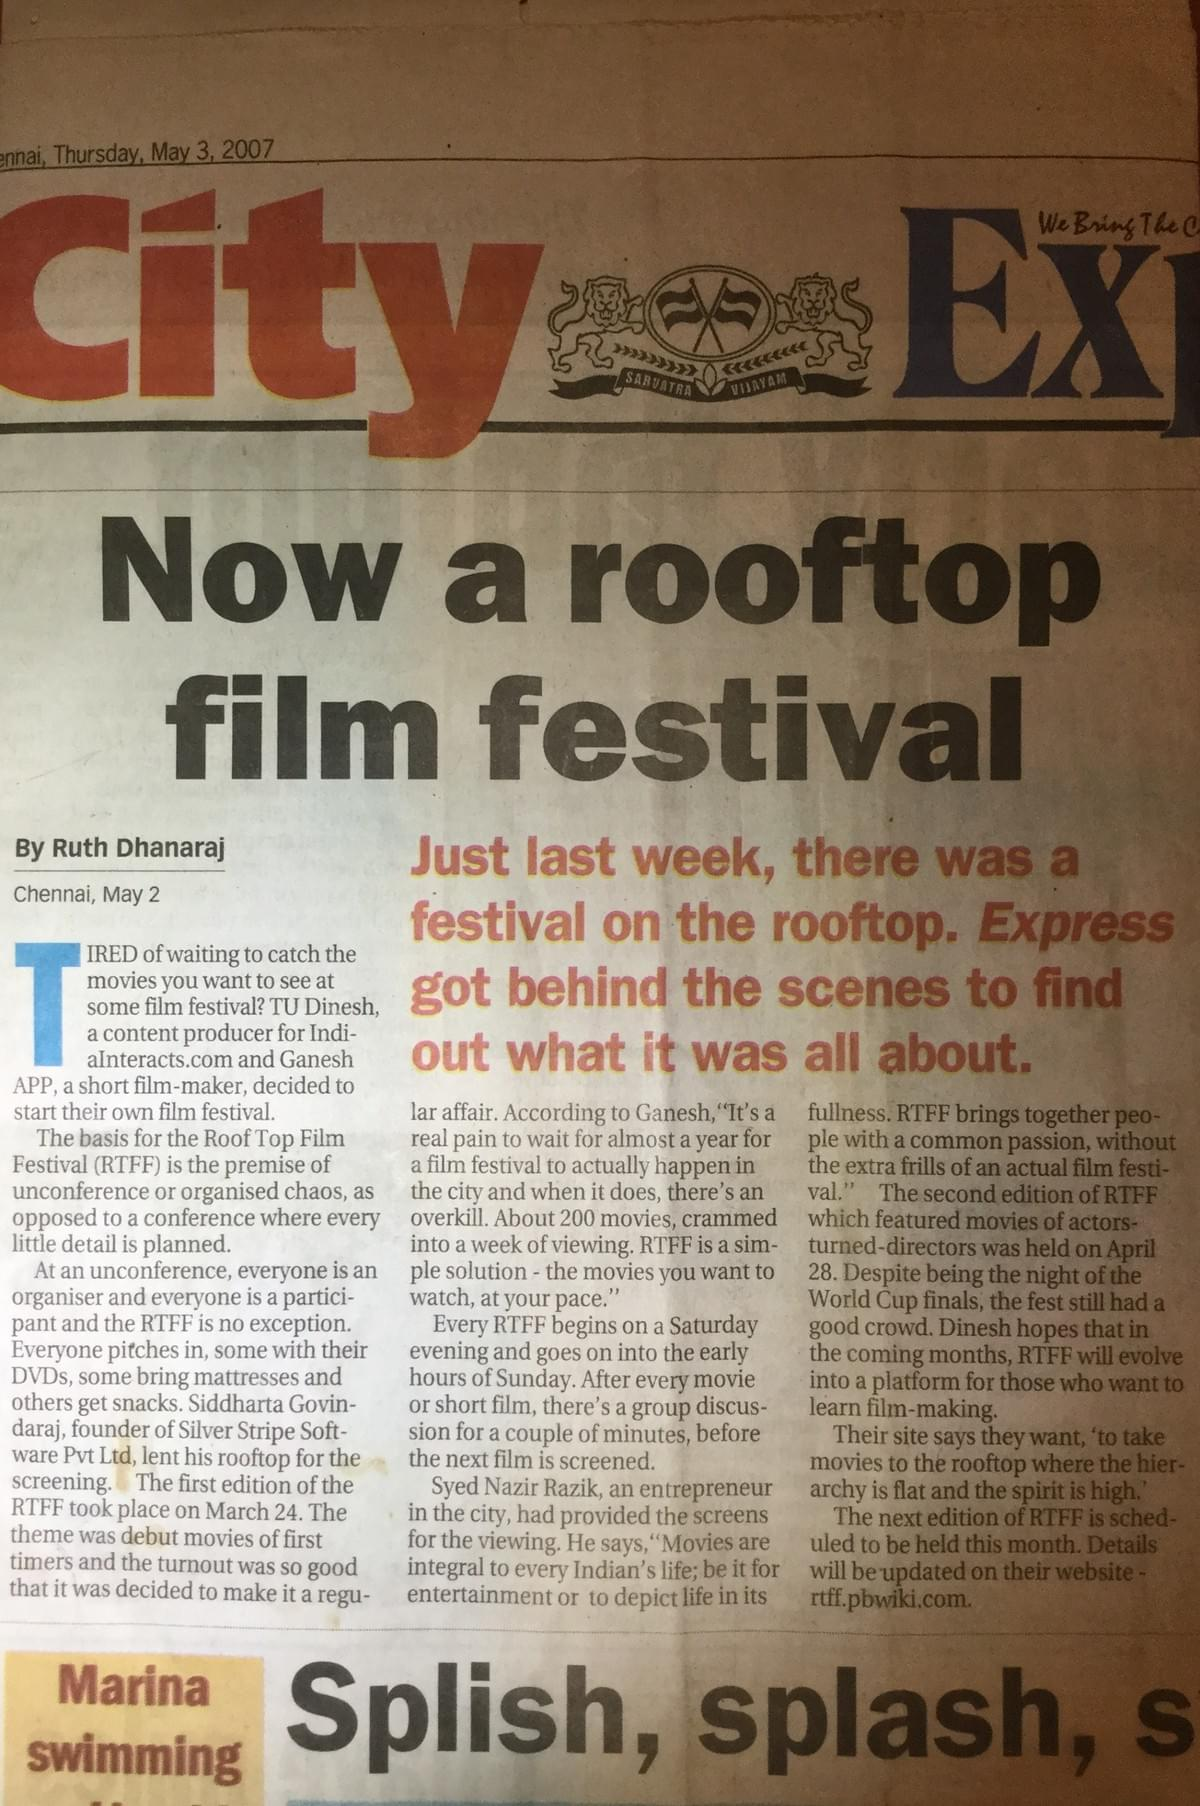 Rooft Top Film Festival covered be City Express, The New Indian Express, Chennai, May 3 2007